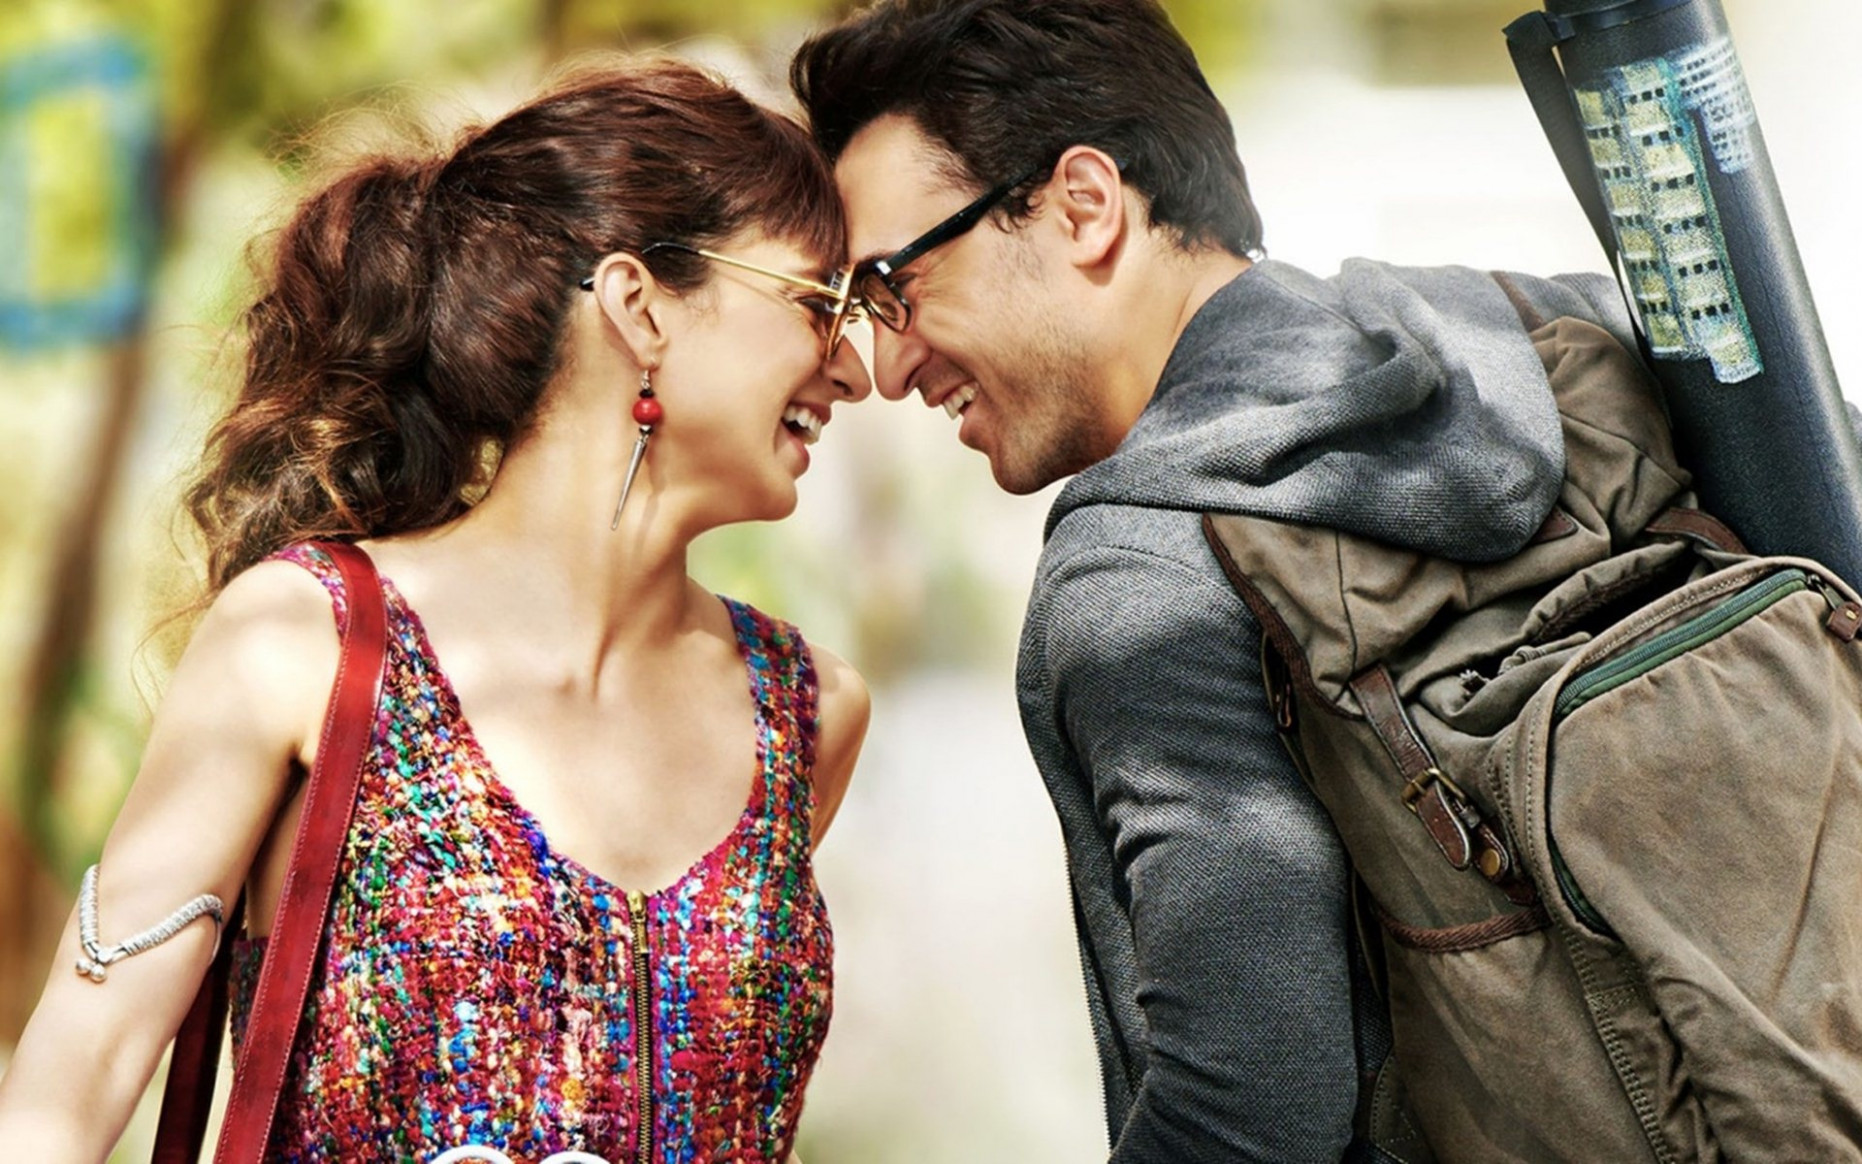 Sweet bollywood couple love photo | HD Wallpapers Rocks